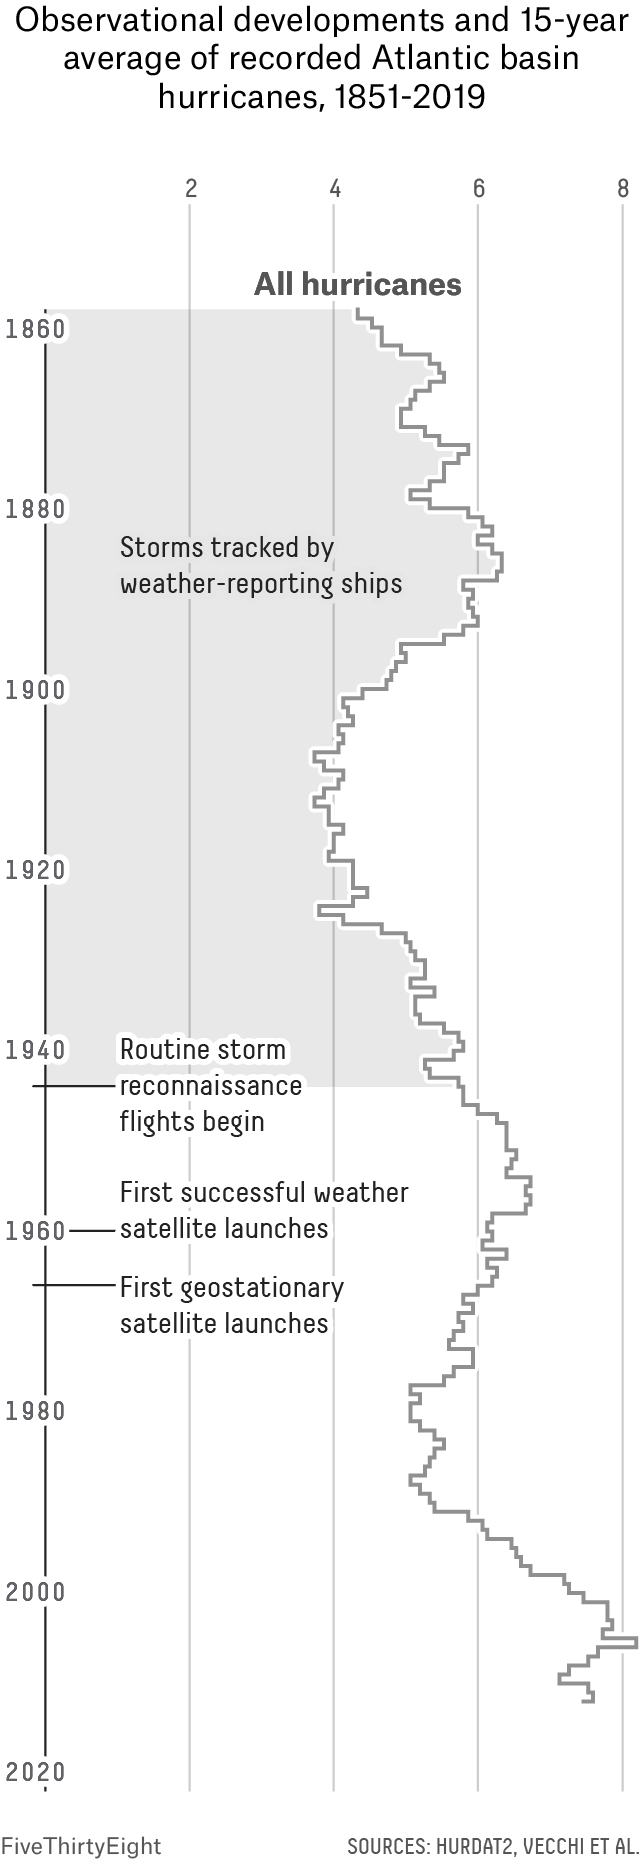 A line chart showing a line for the 15-year smoothed average number of Atlantic basin hurricanes and major hurricanes between 1851 and 2019. Four annotations mark the following points in time: From 1851 to 1944 we were dependent on weather-reporting ships for data, in 1944 routine storm reconnaissance flights began, in 1960 the first successful weather satellite launches and in 1966 the first geostationary satellite launches.